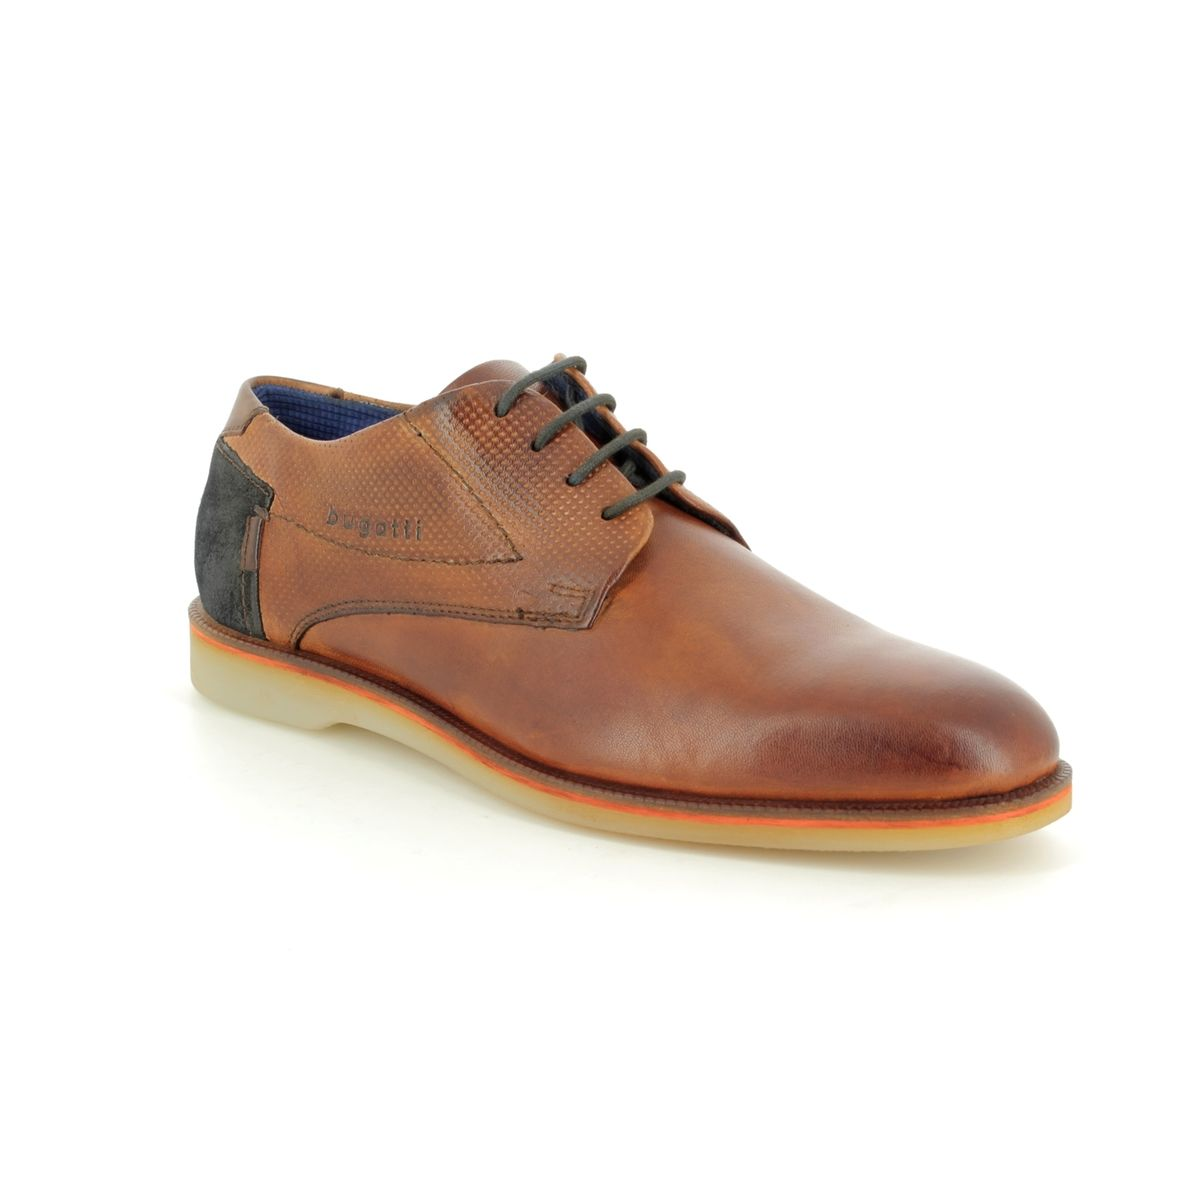 31264702-6300 Tan Leather casual shoes